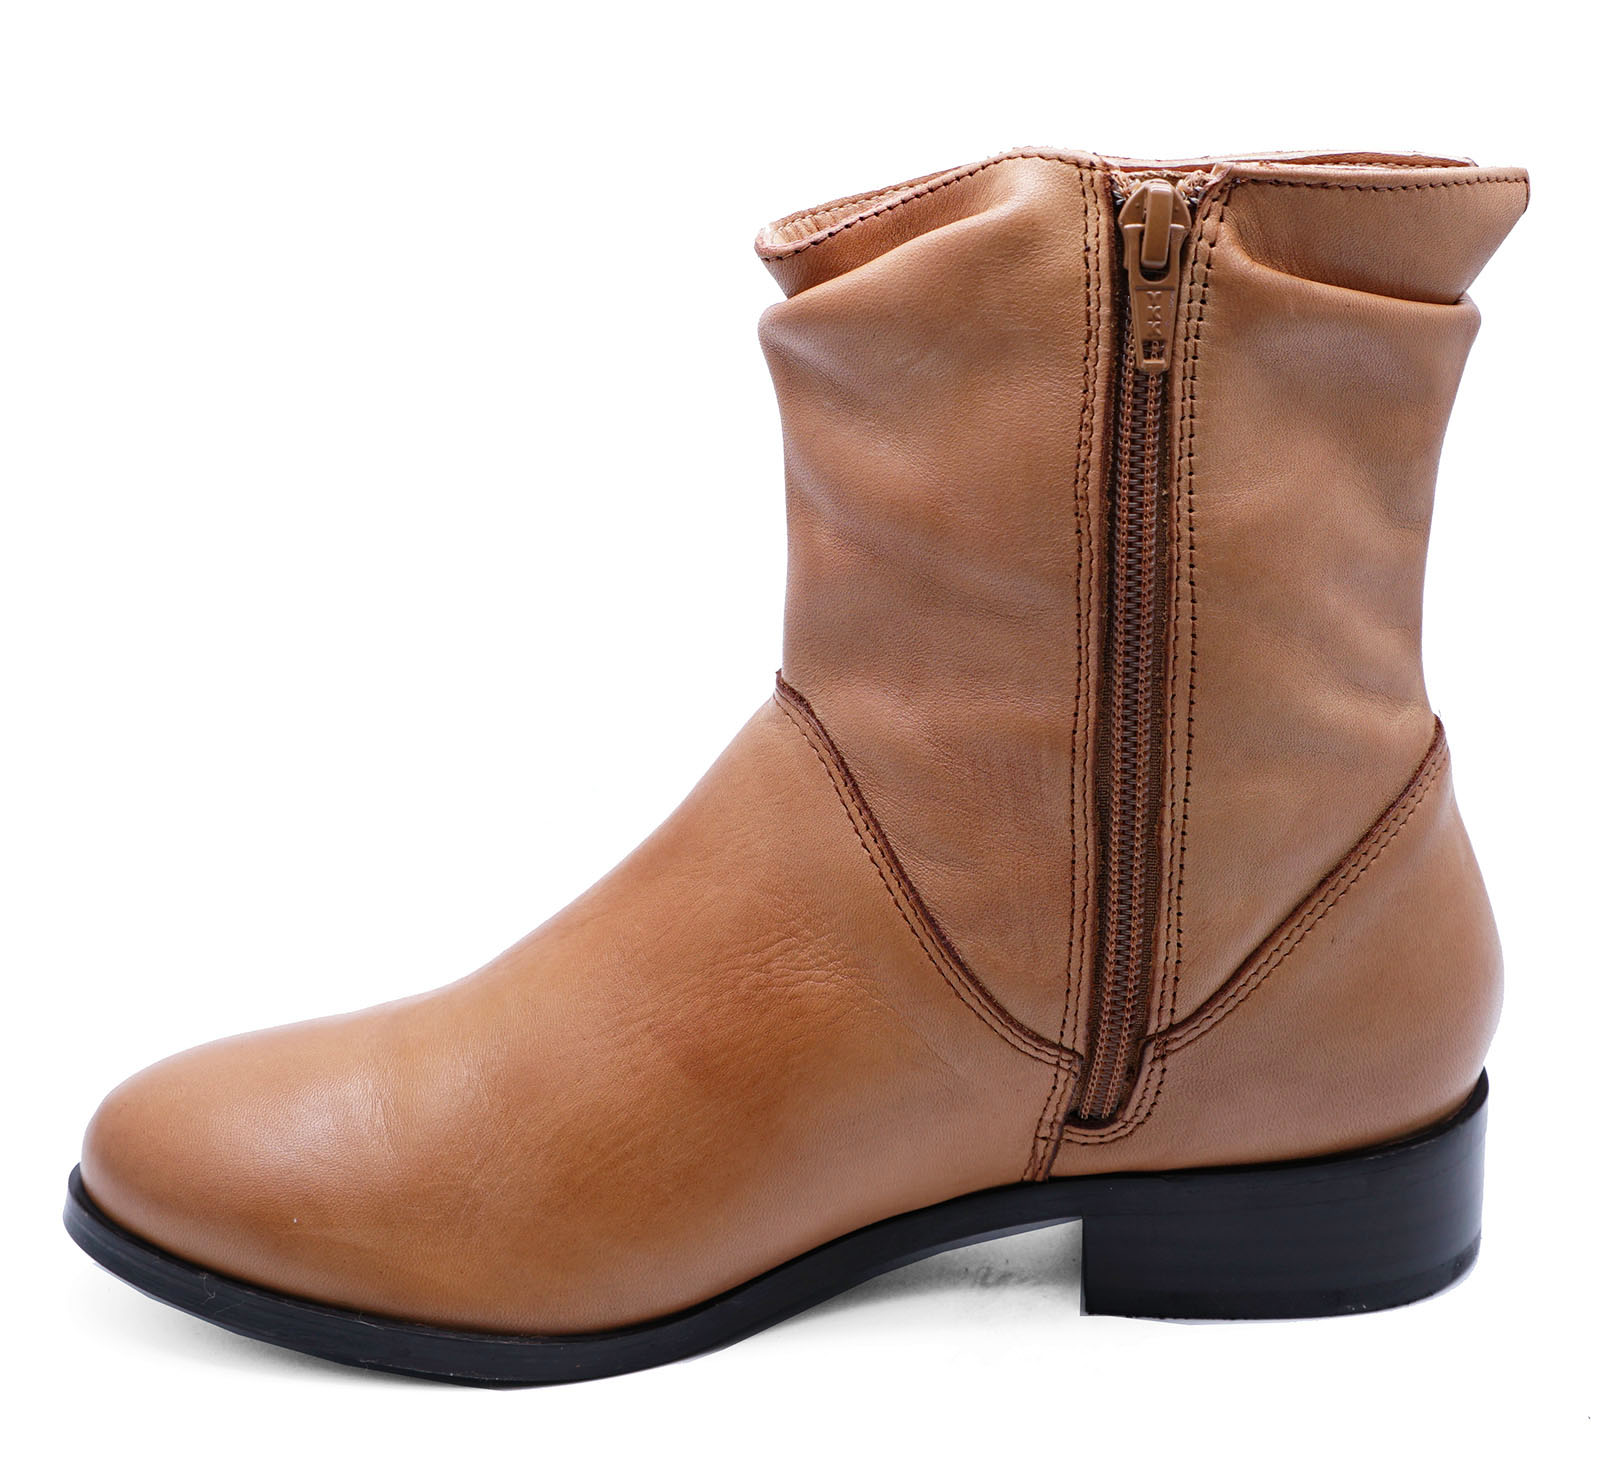 LADIES-FLAT-GENUINE-LEATHER-TAN-ZIP-UP-ANKLE-CALF-BOOTS-COMFY-SHOES-SIZES-2-9 thumbnail 43